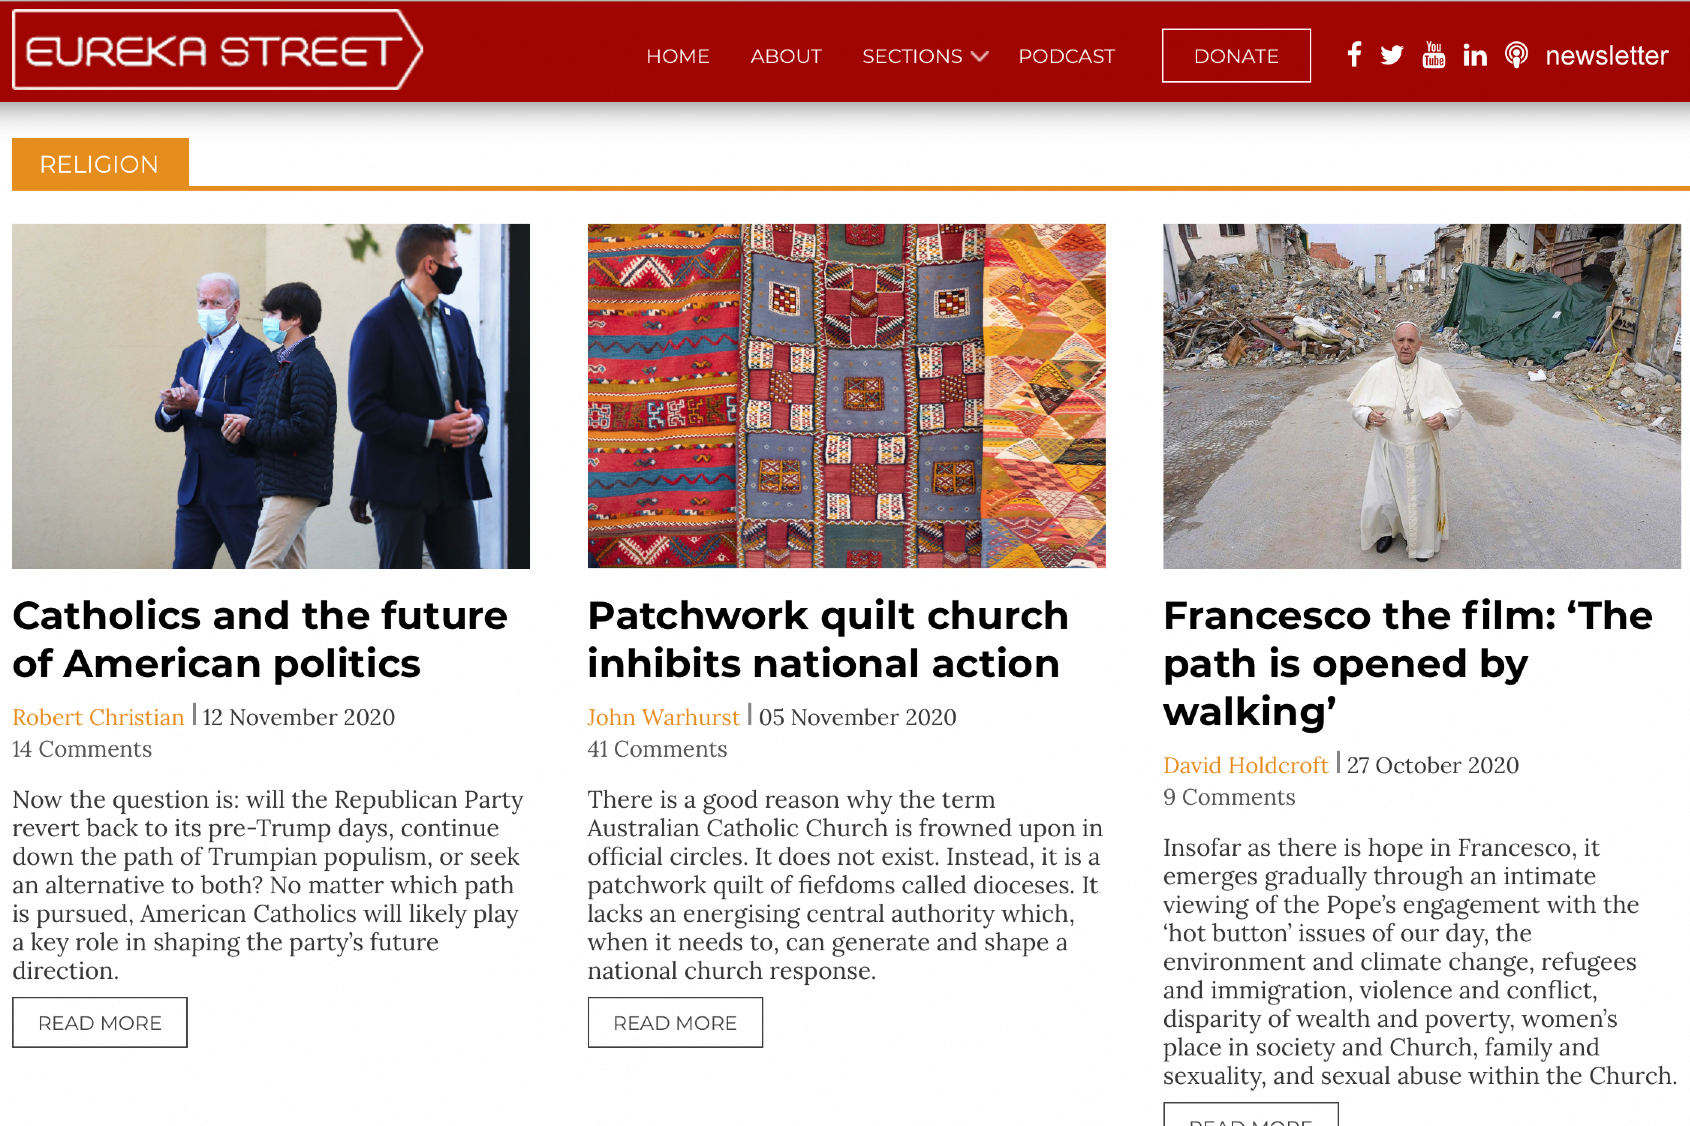 Screenshot of Eureka Street homepage